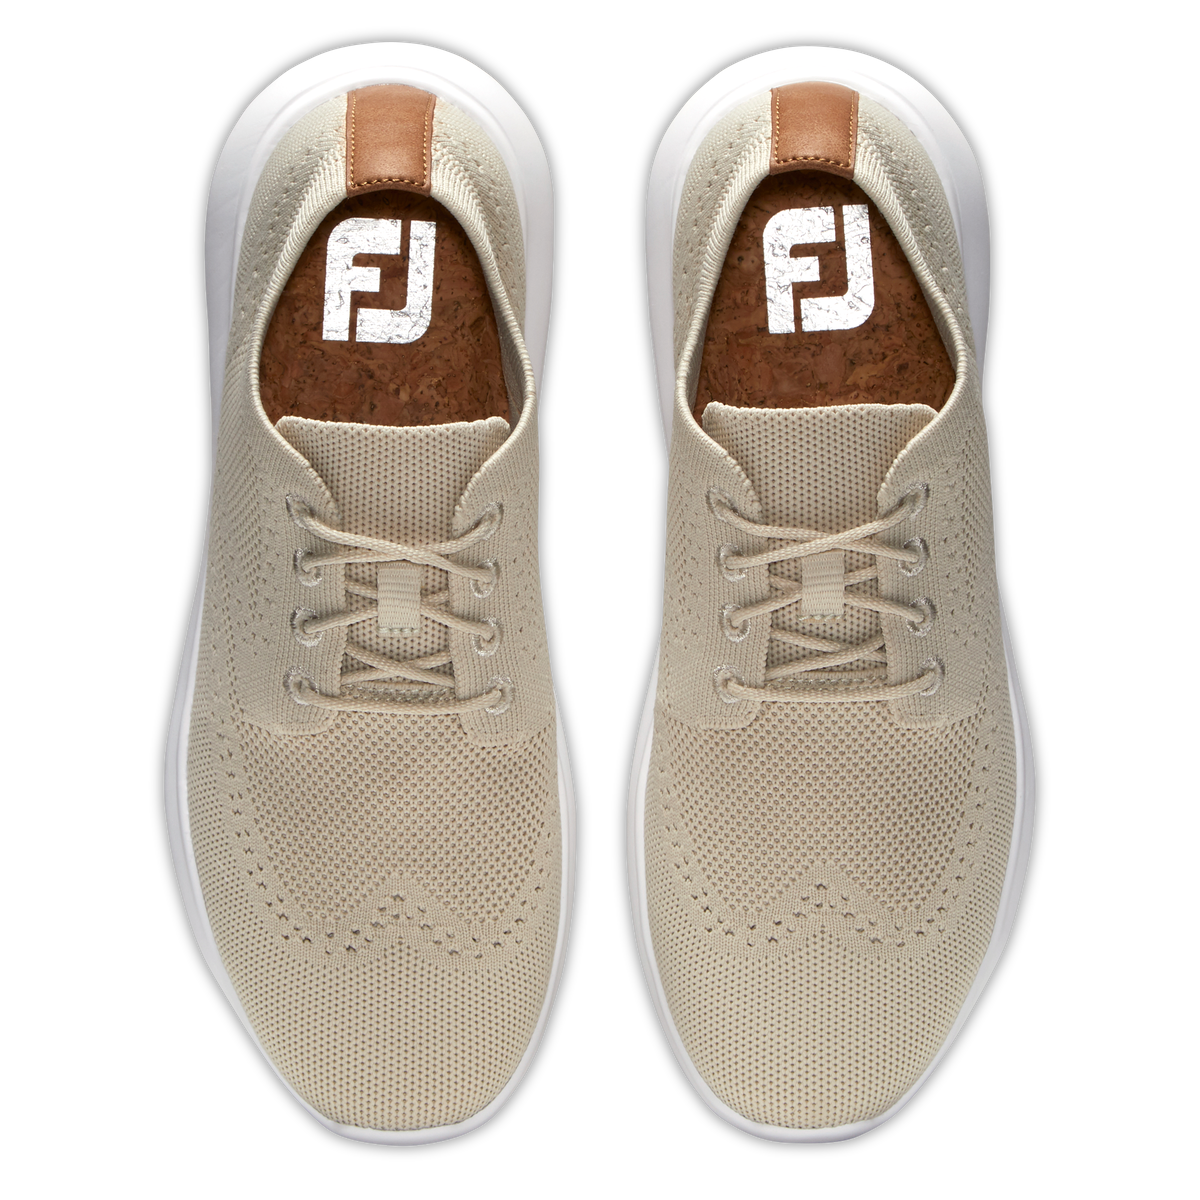 FJ Flex LE2 Women